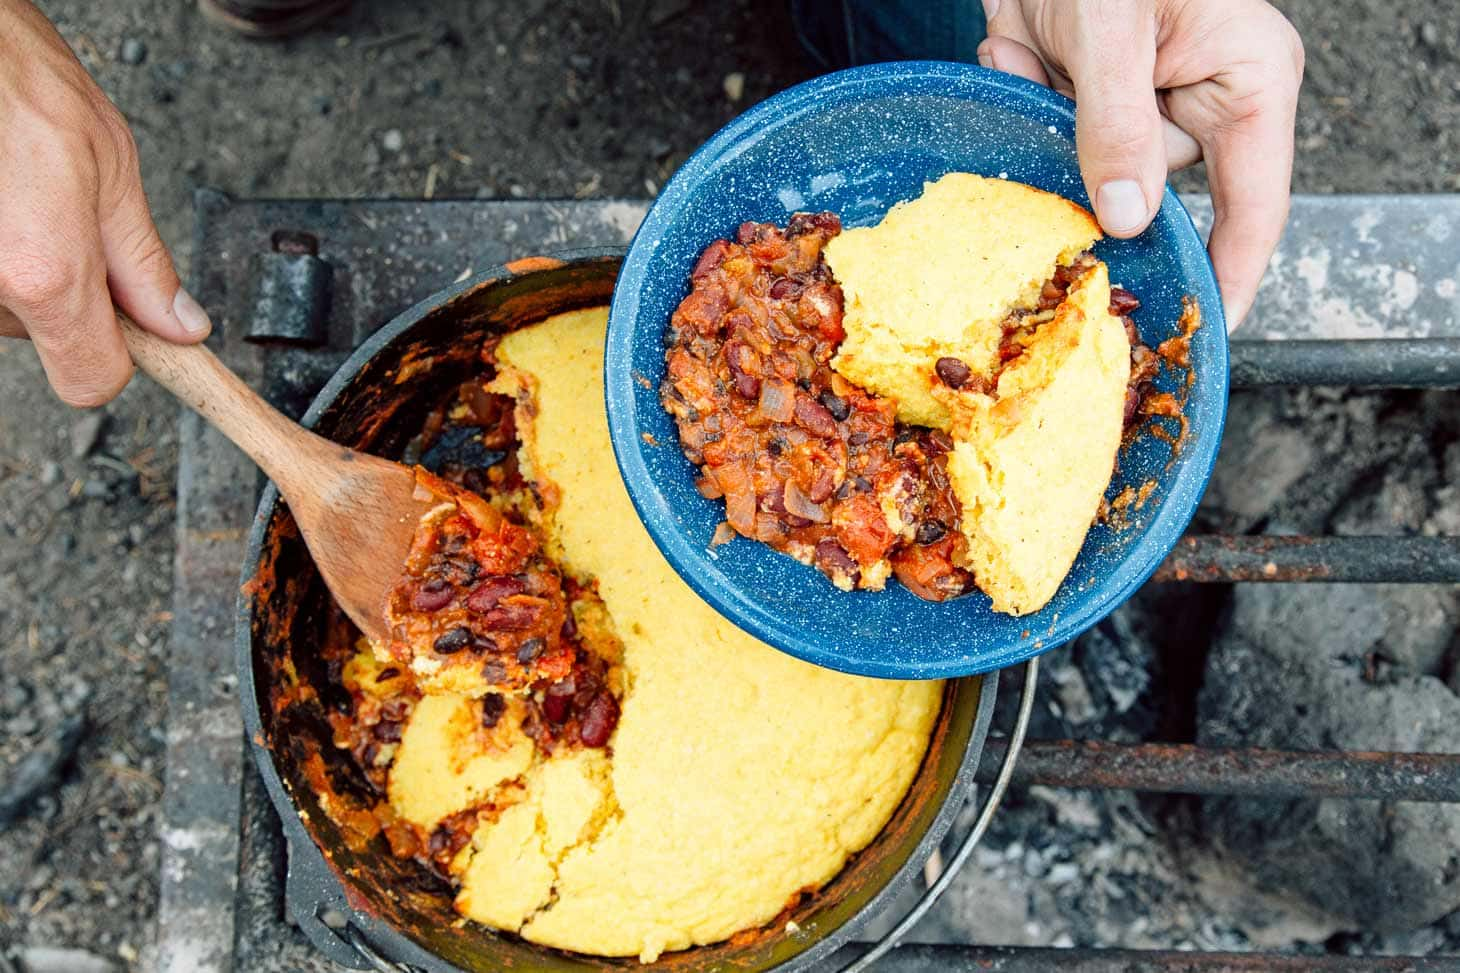 Dutch oven vegetarian chili cornbread fresh off the grid for Dutch oven camping recipes for two